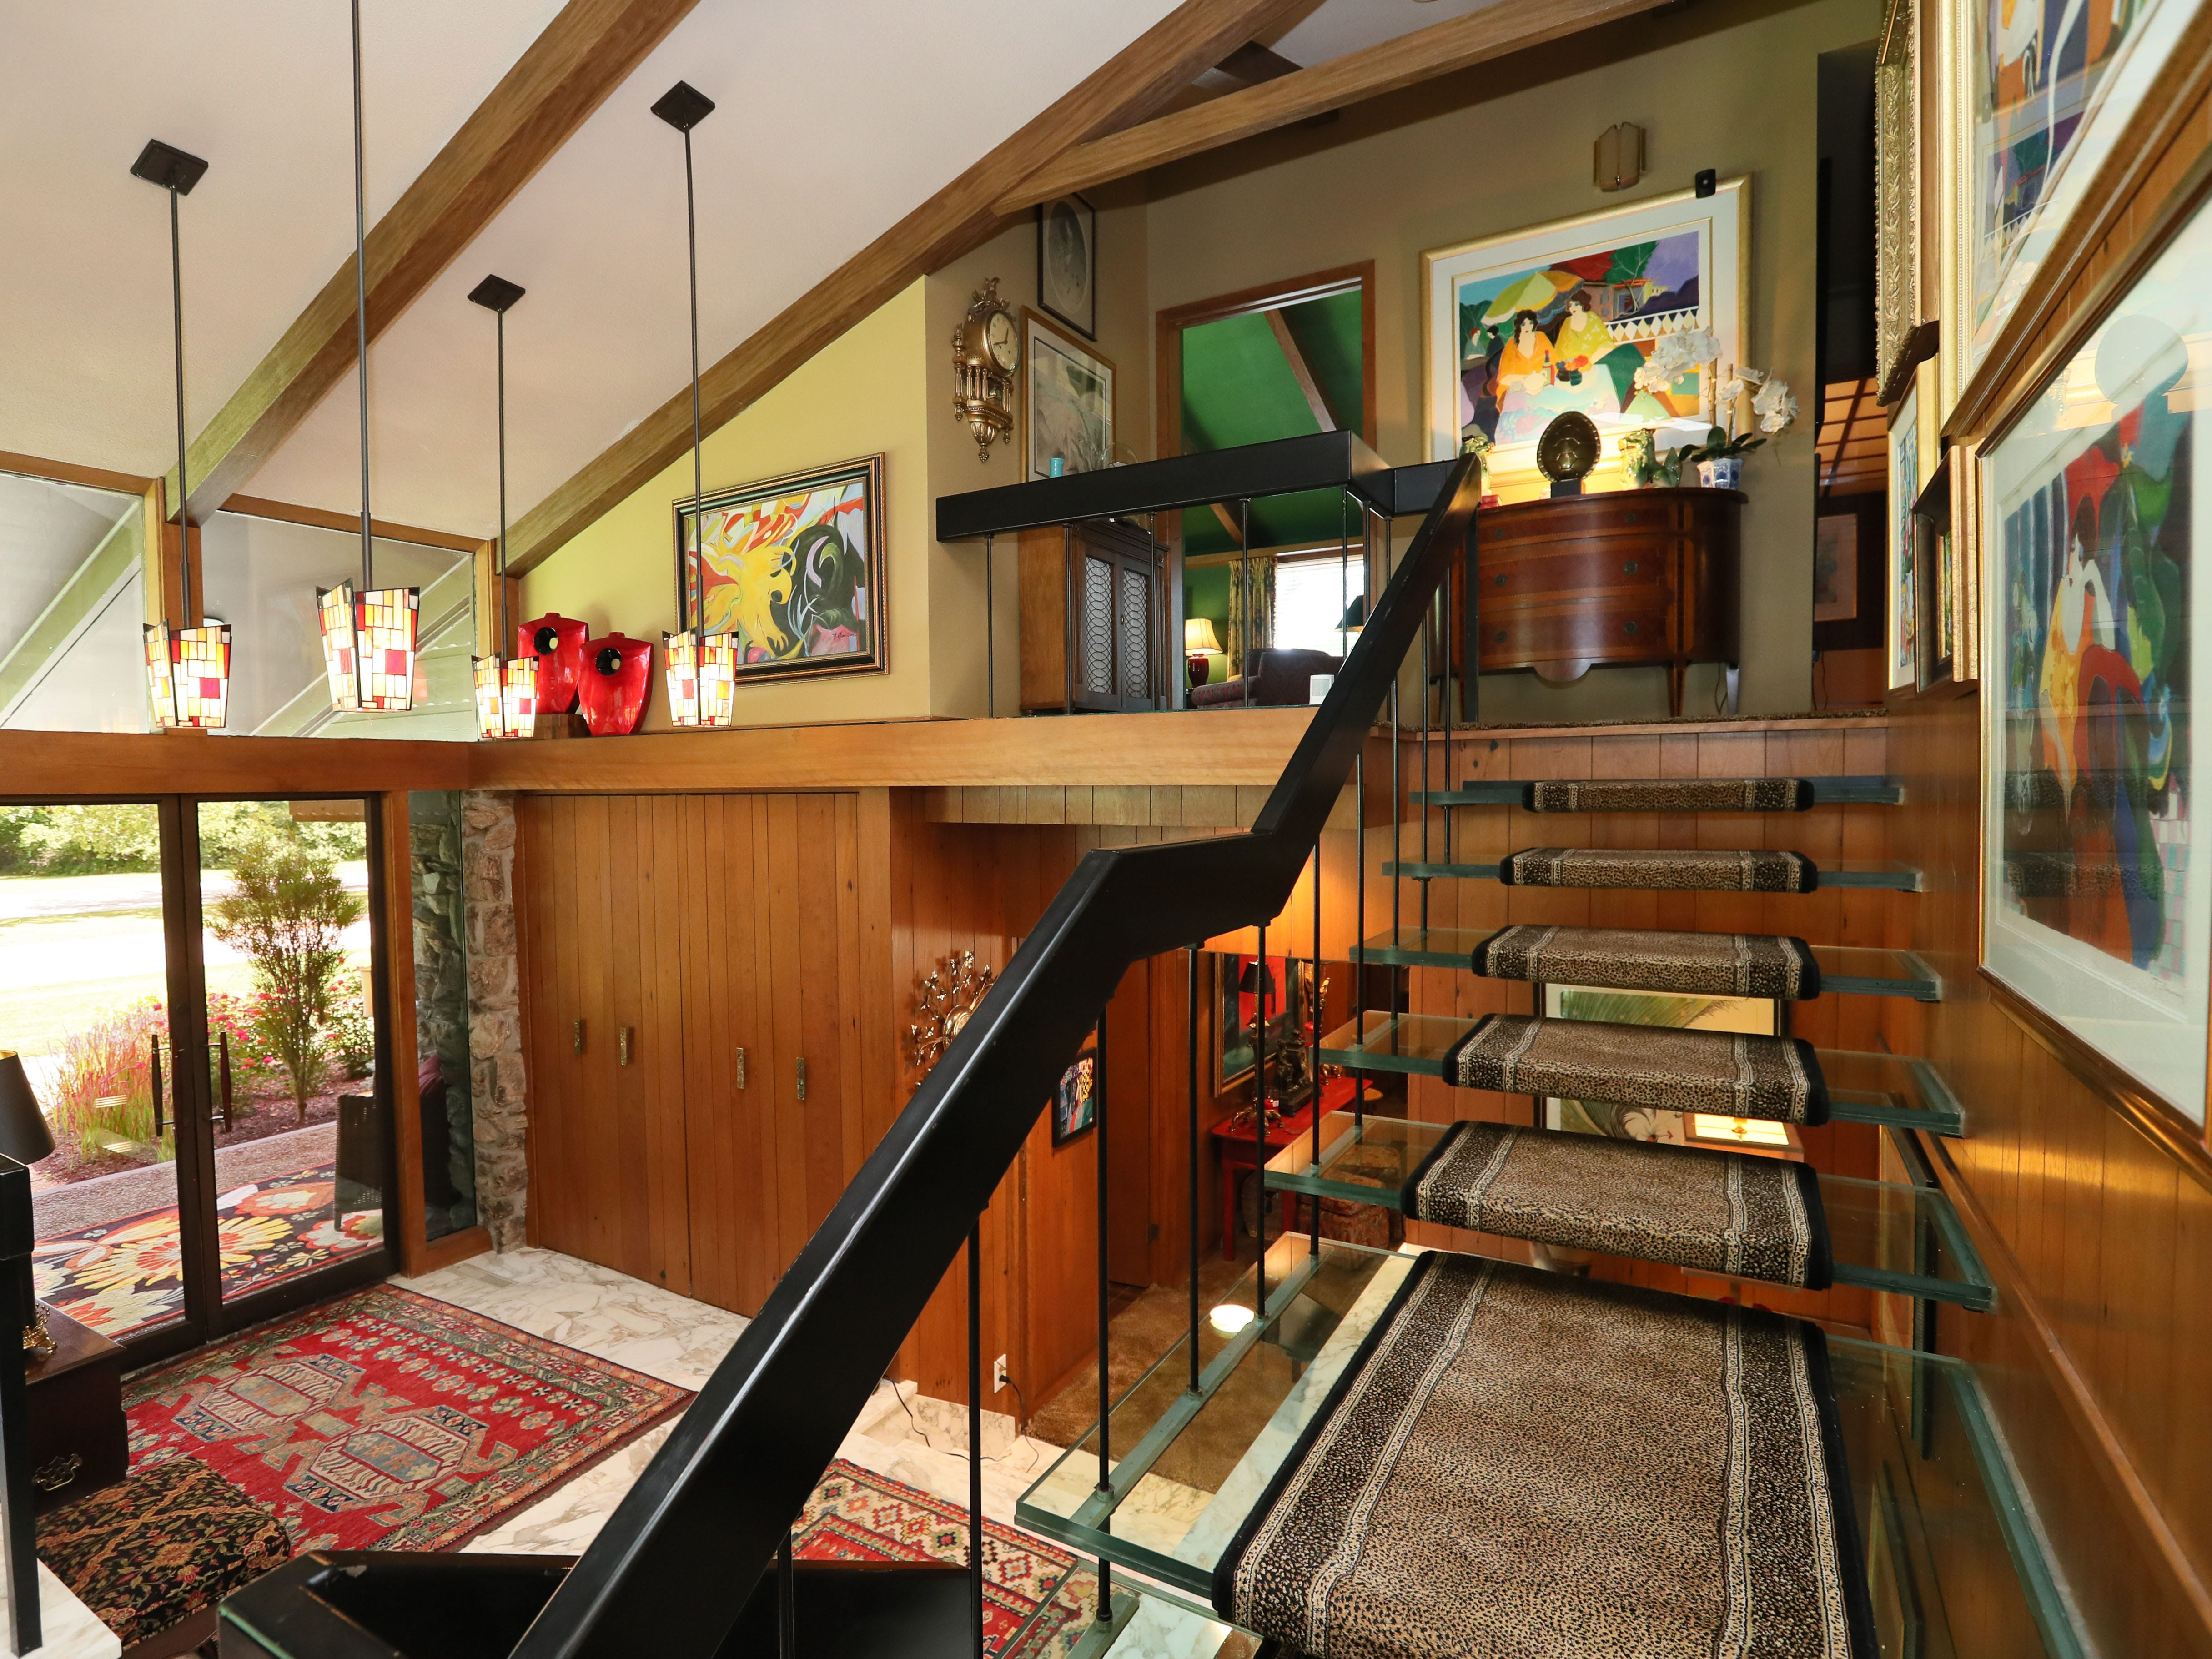 Glass stairs lined with carpet lead to the upper level. Modern art accents the stairway and landing.